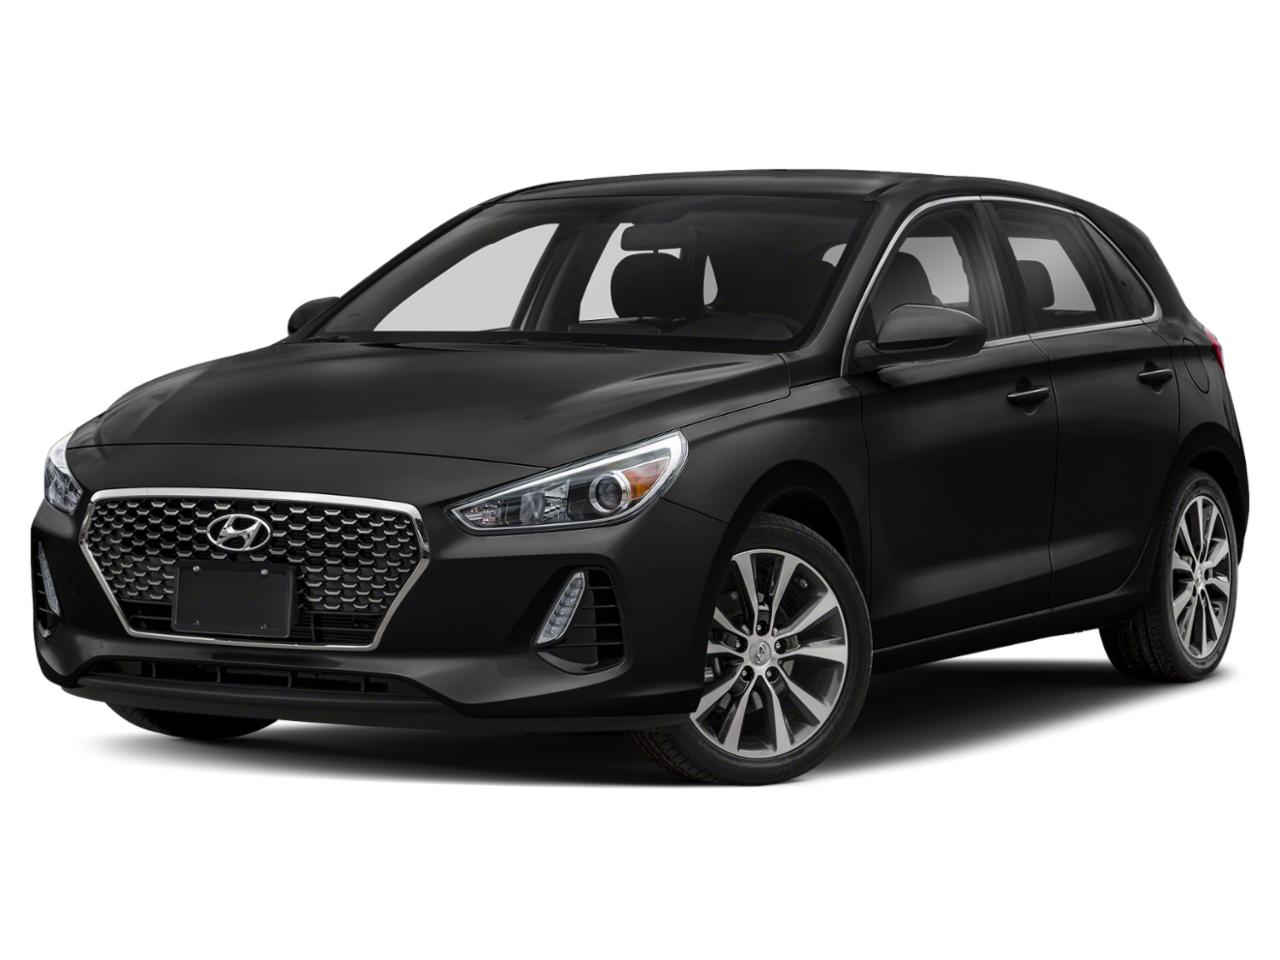 2019 Hyundai Elantra GT Vehicle Photo in TALLAHASSEE, FL 32308